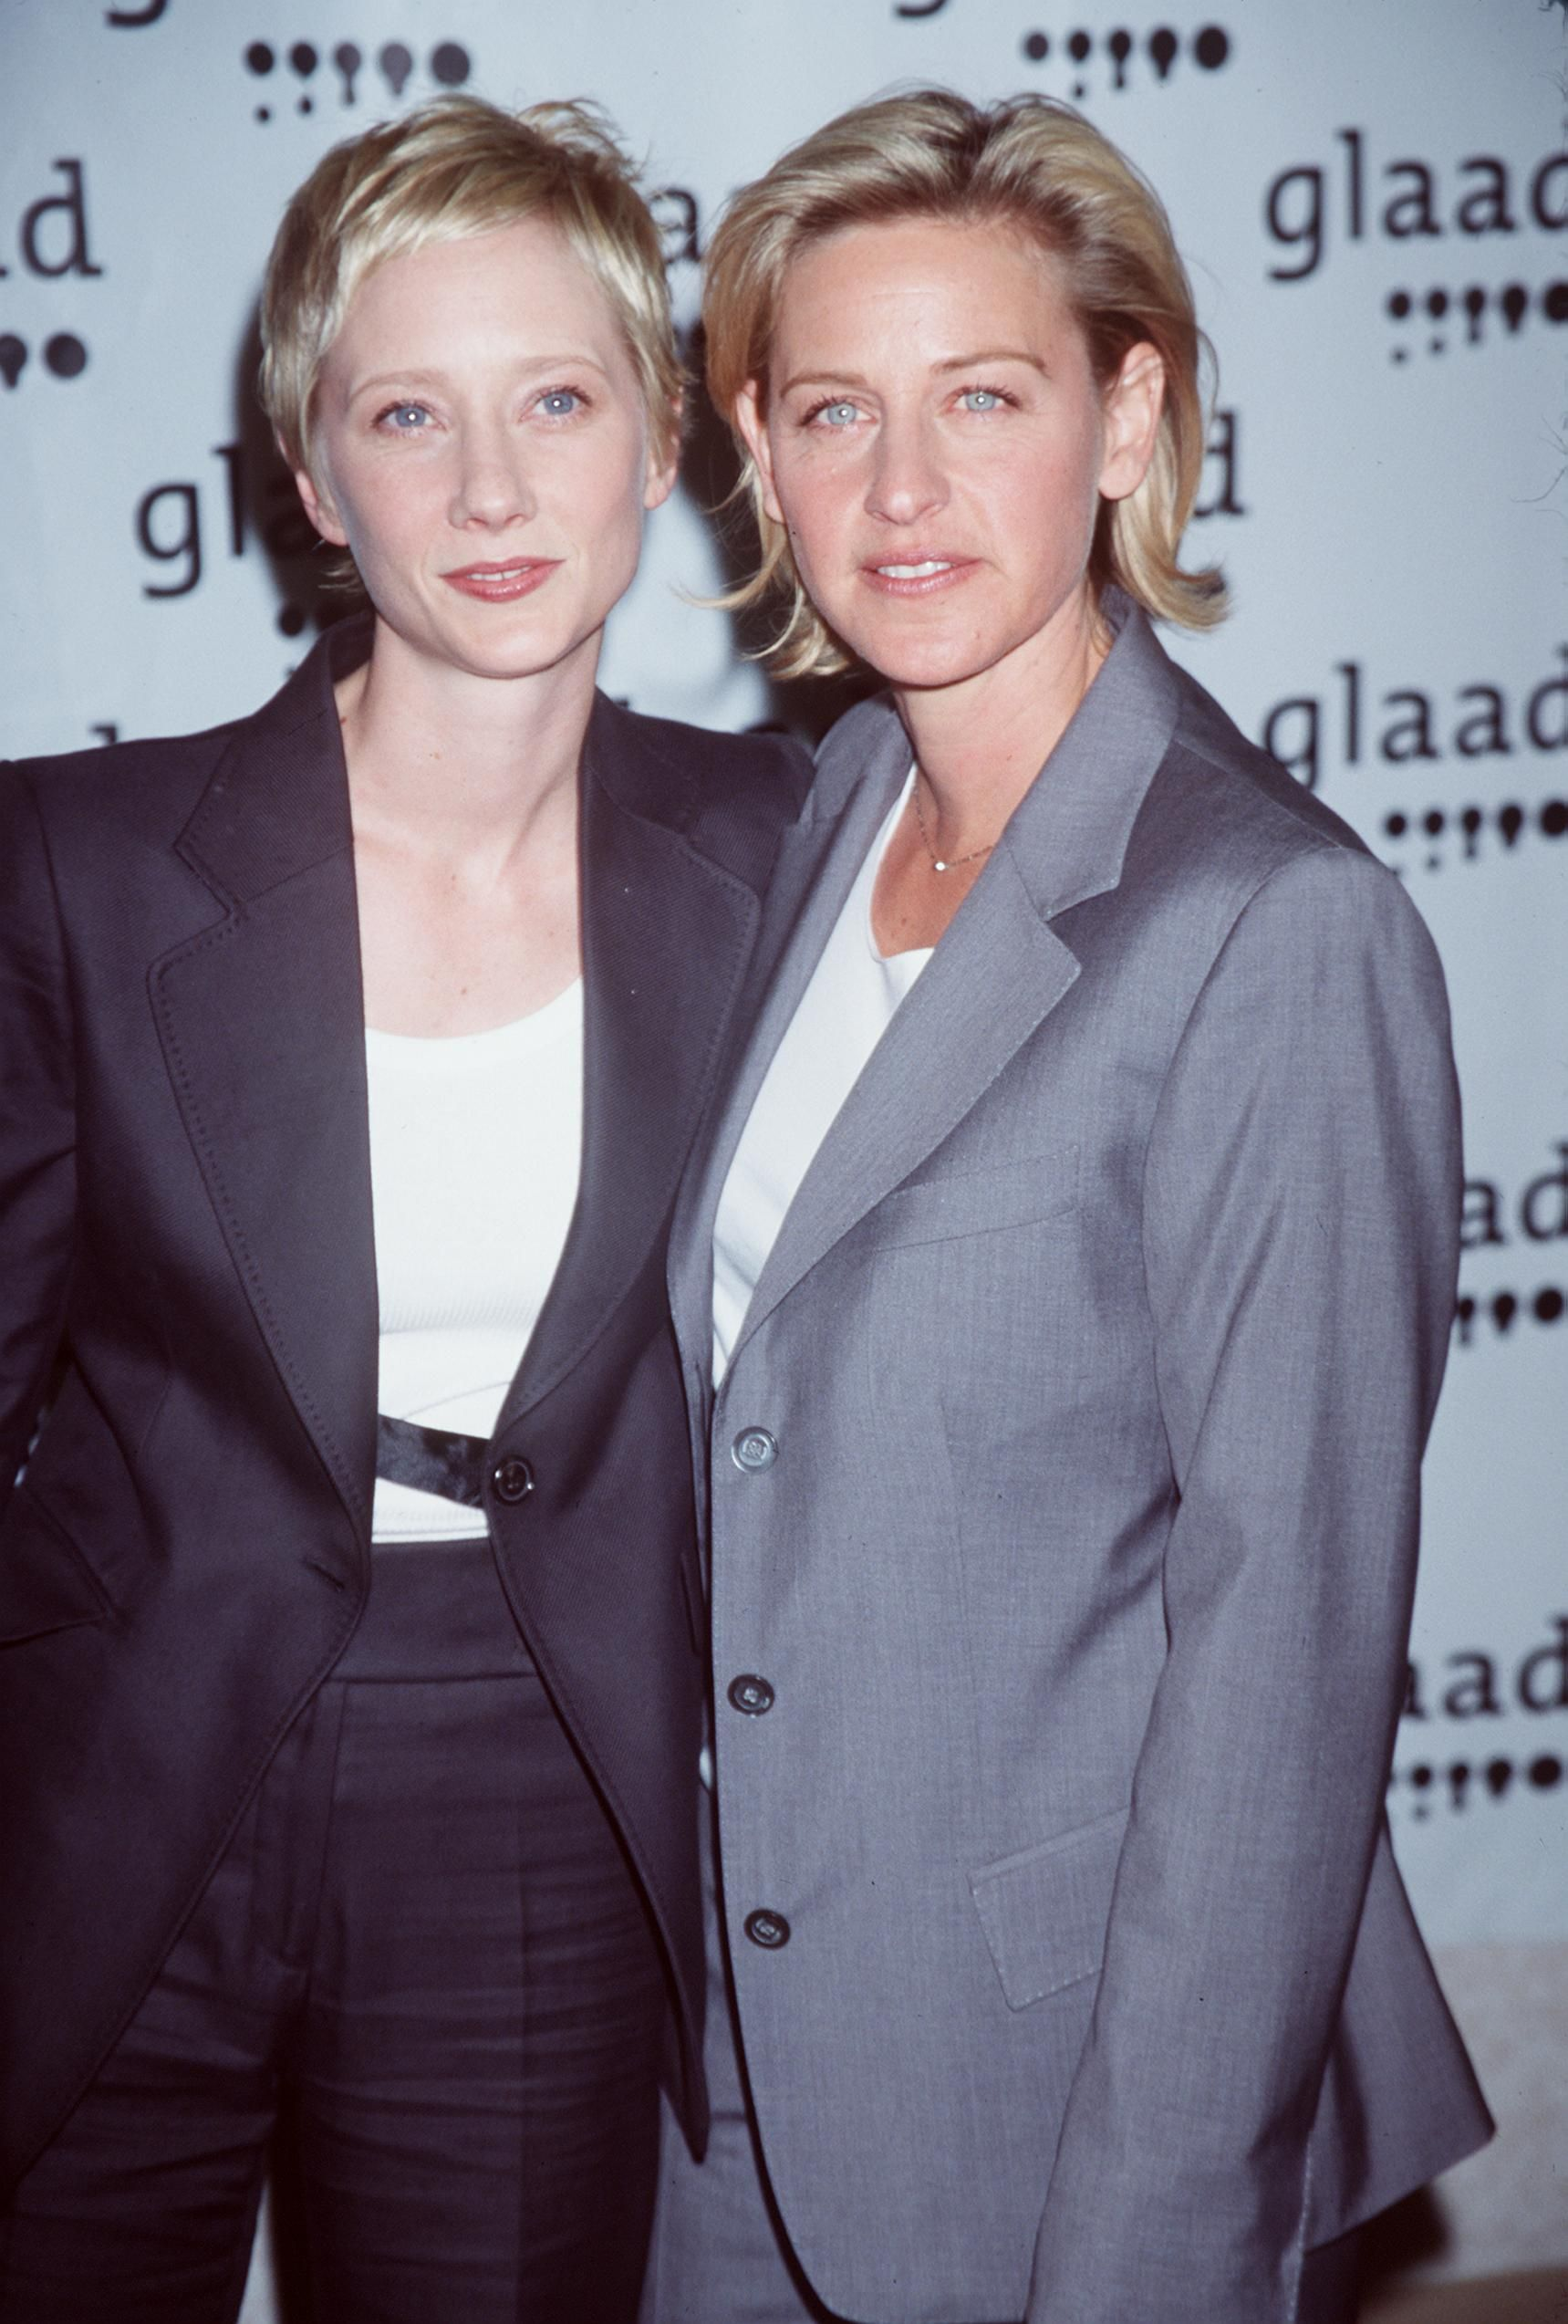 Anne Heche and Ellen DeGeneres at the 10th Annual GLAAD Media Awards Gala in 1999